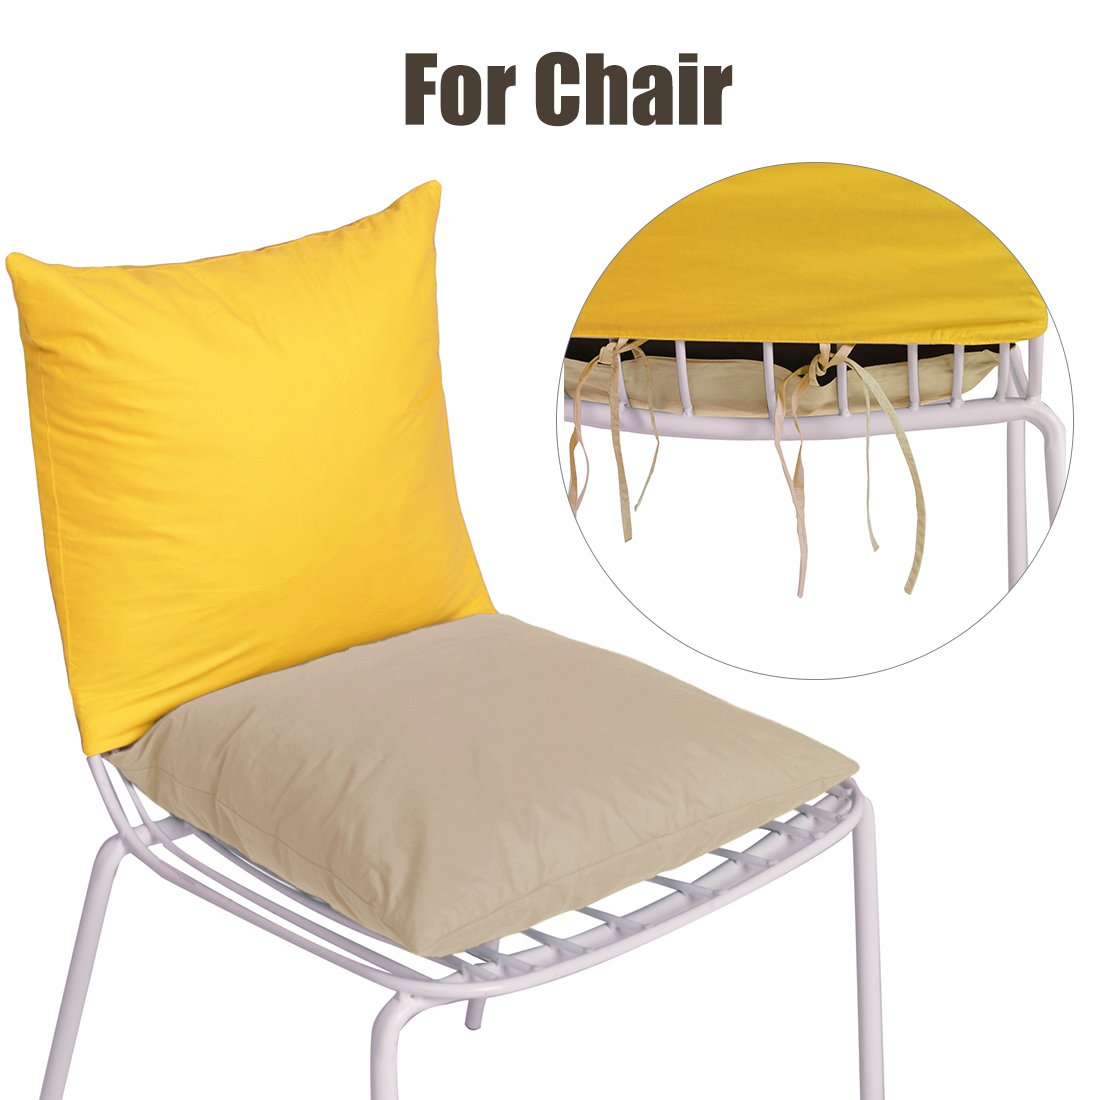 Home Decor Reversible Throw Pillow for Chair Sofa Yellow /& Beige Famome Chair Pad Cushion Filled Feather and Down 15x15 inch